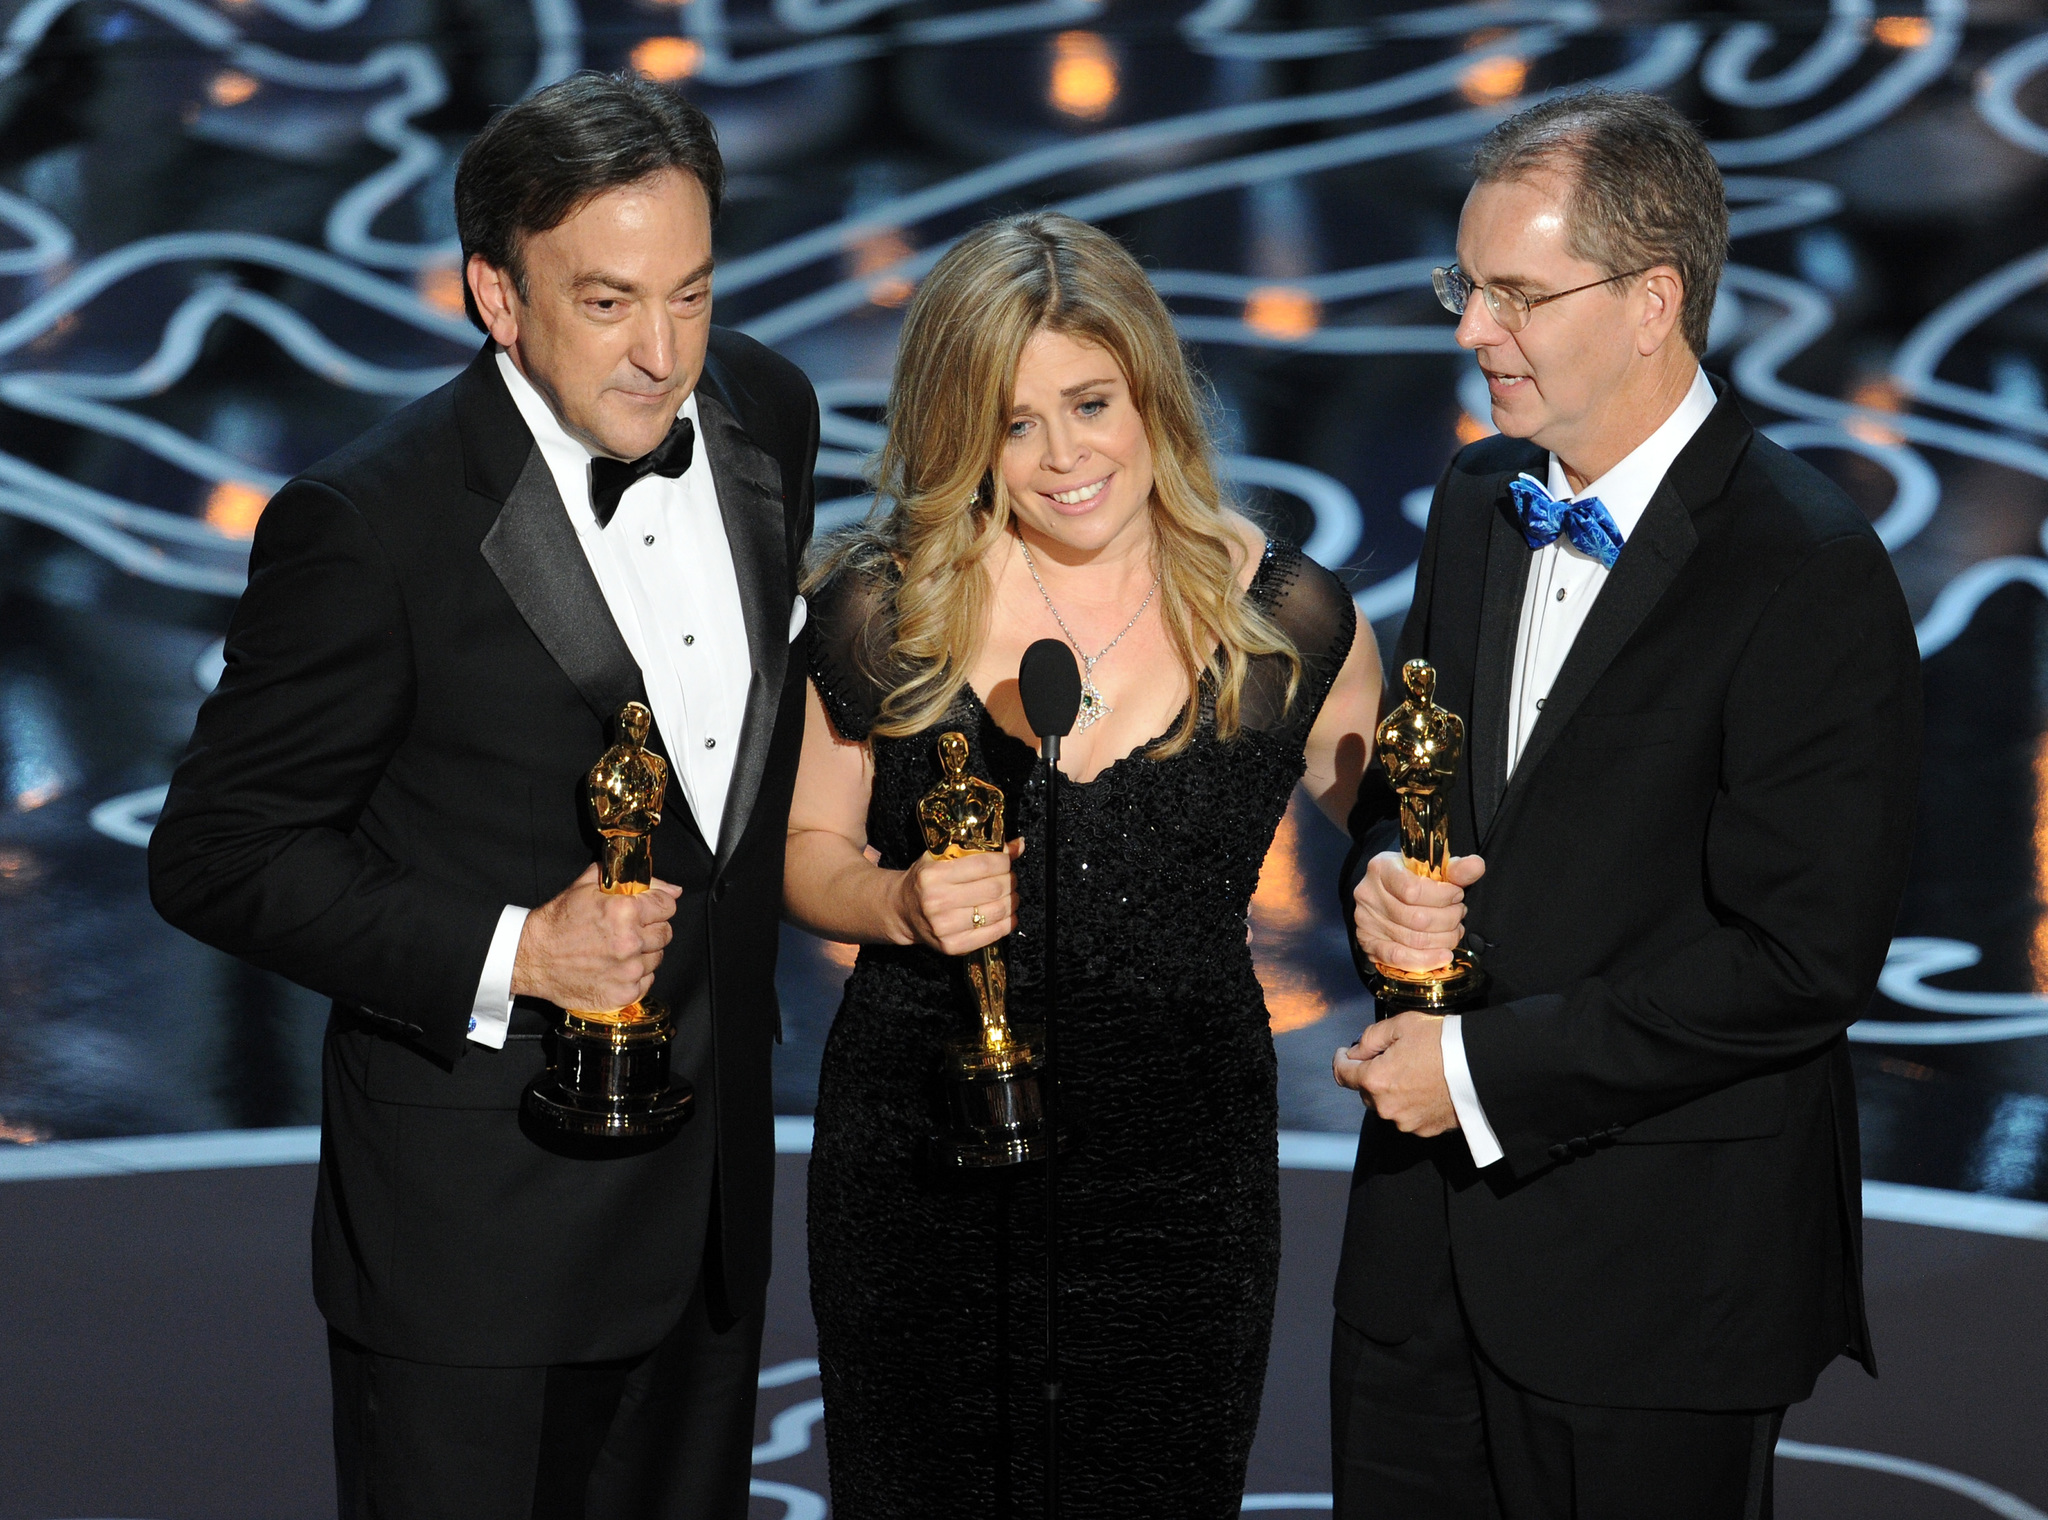 Chris Buck, Peter Del Vecho, and Jennifer Lee at an event for The Oscars (2014)